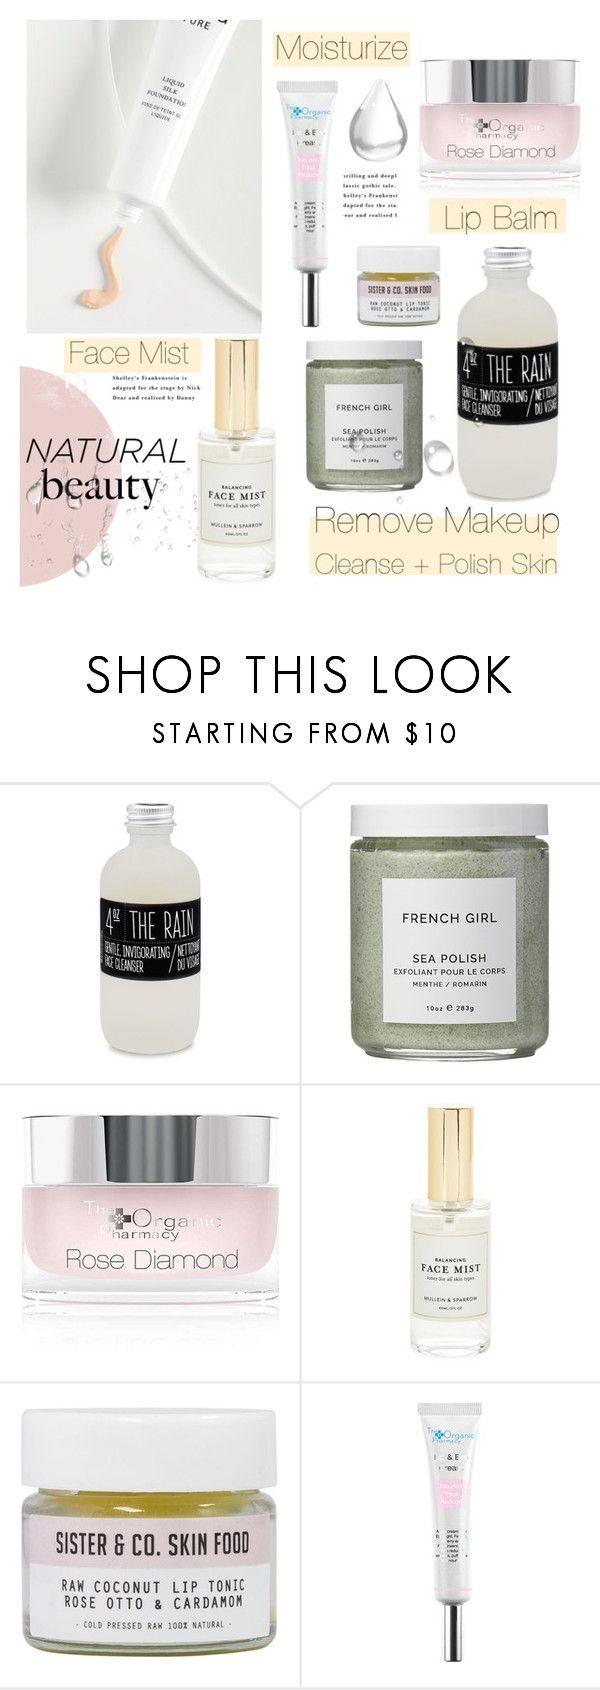 """""""#minimalistbeauty"""" by hellodollface ❤ liked on Polyvore featuring beauty, Belmondo, French Girl, The Organic Pharmacy, Mullein & Sparrow, Sister & Co., Free People and minimalistbeauty"""